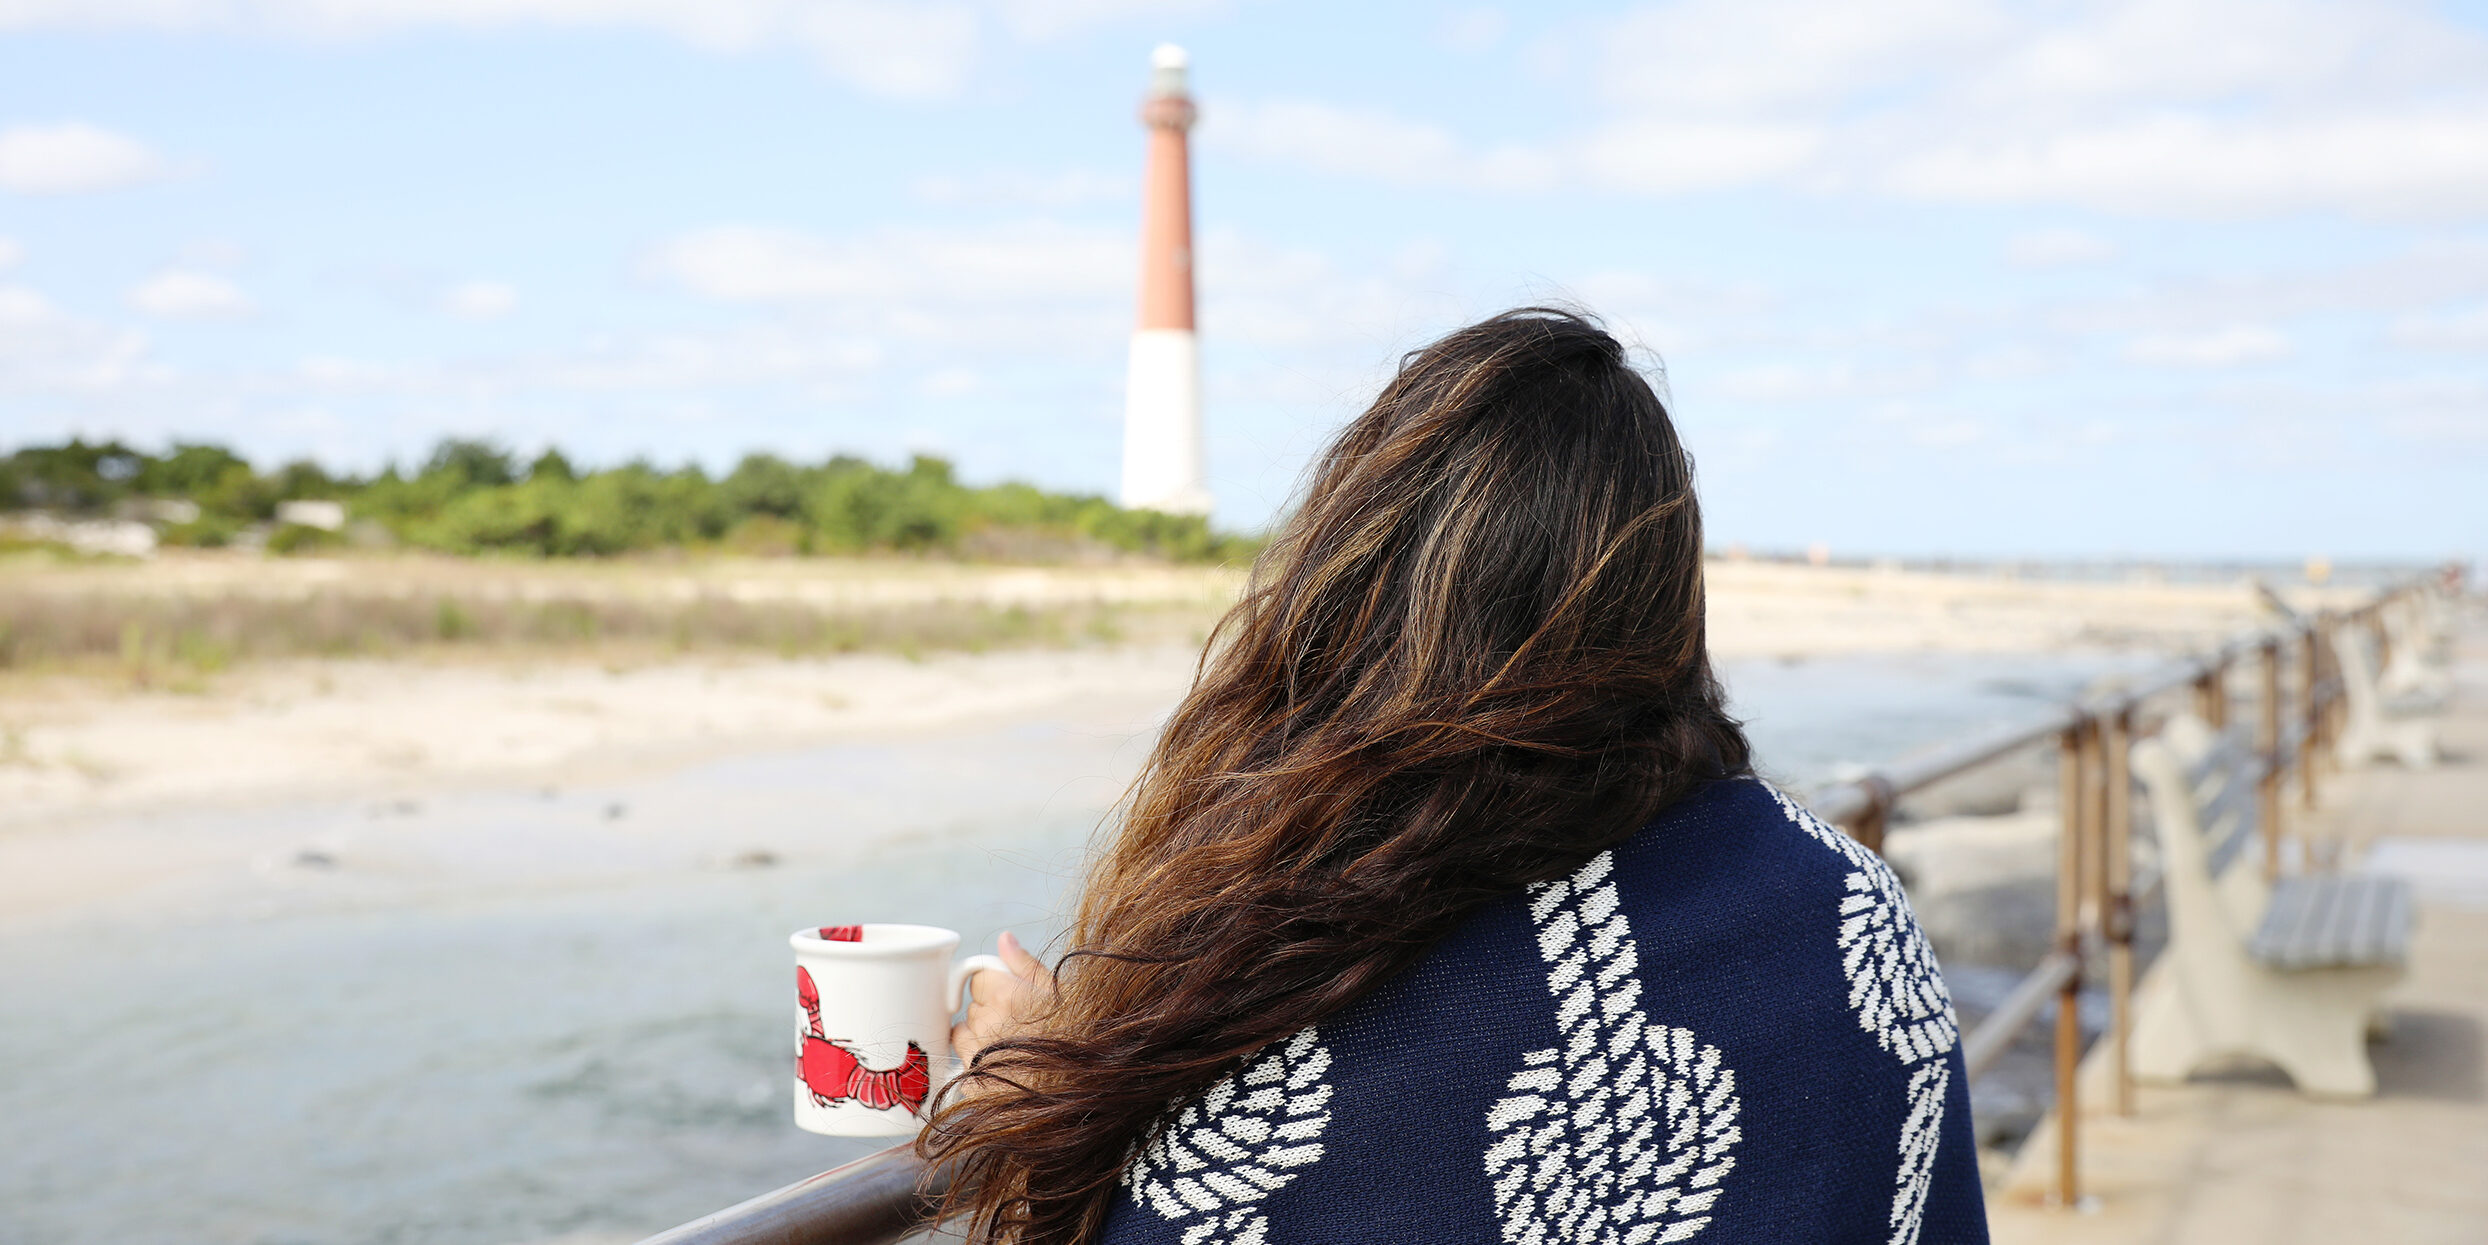 photo of a woman back turned to the camera looking at a lighthouse holding a coffee mug with a lobster on it